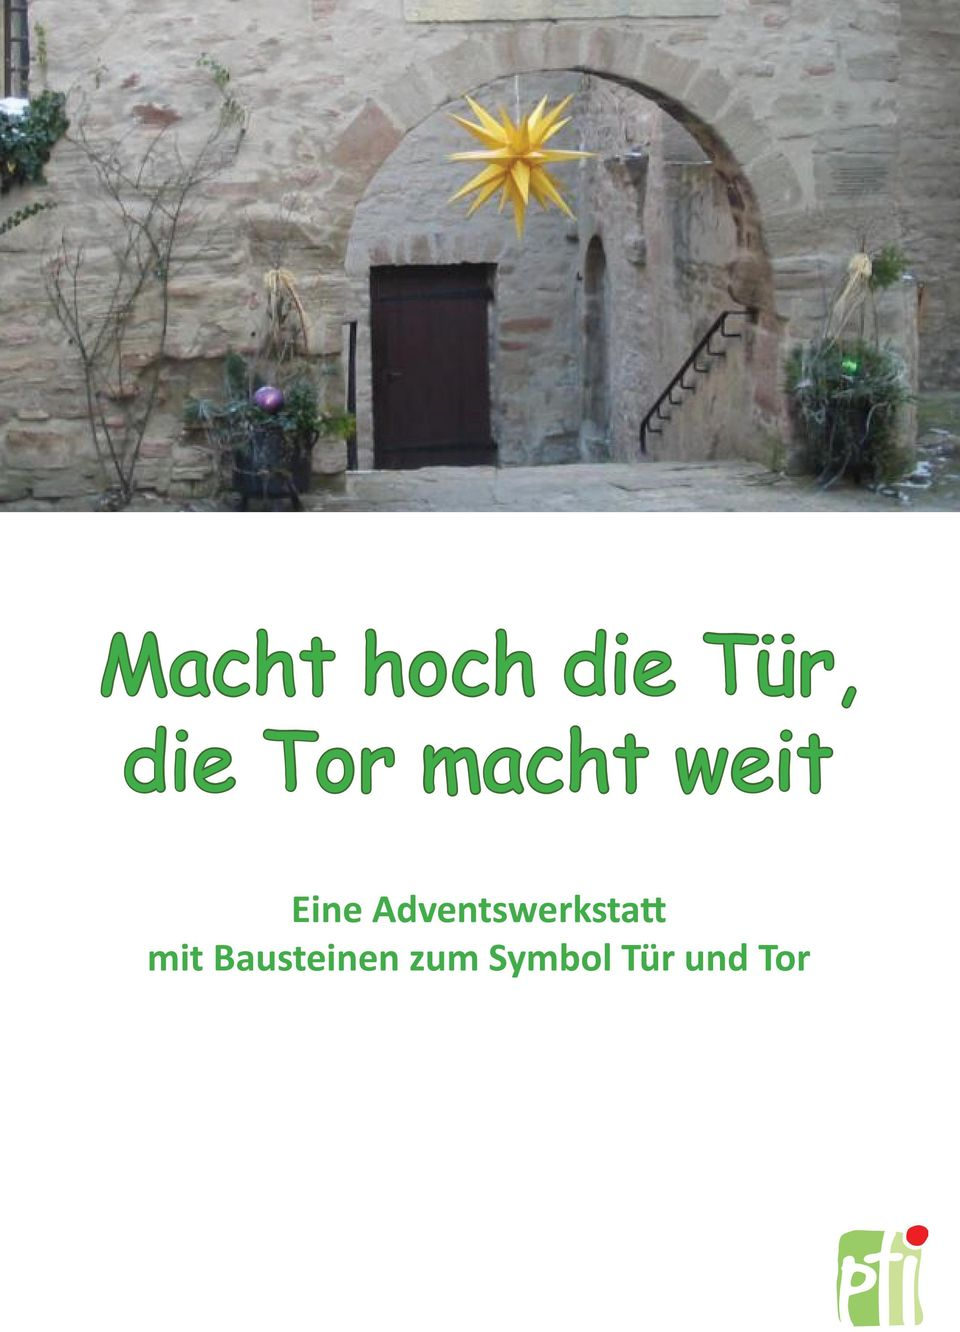 Adventswerkstatt mit